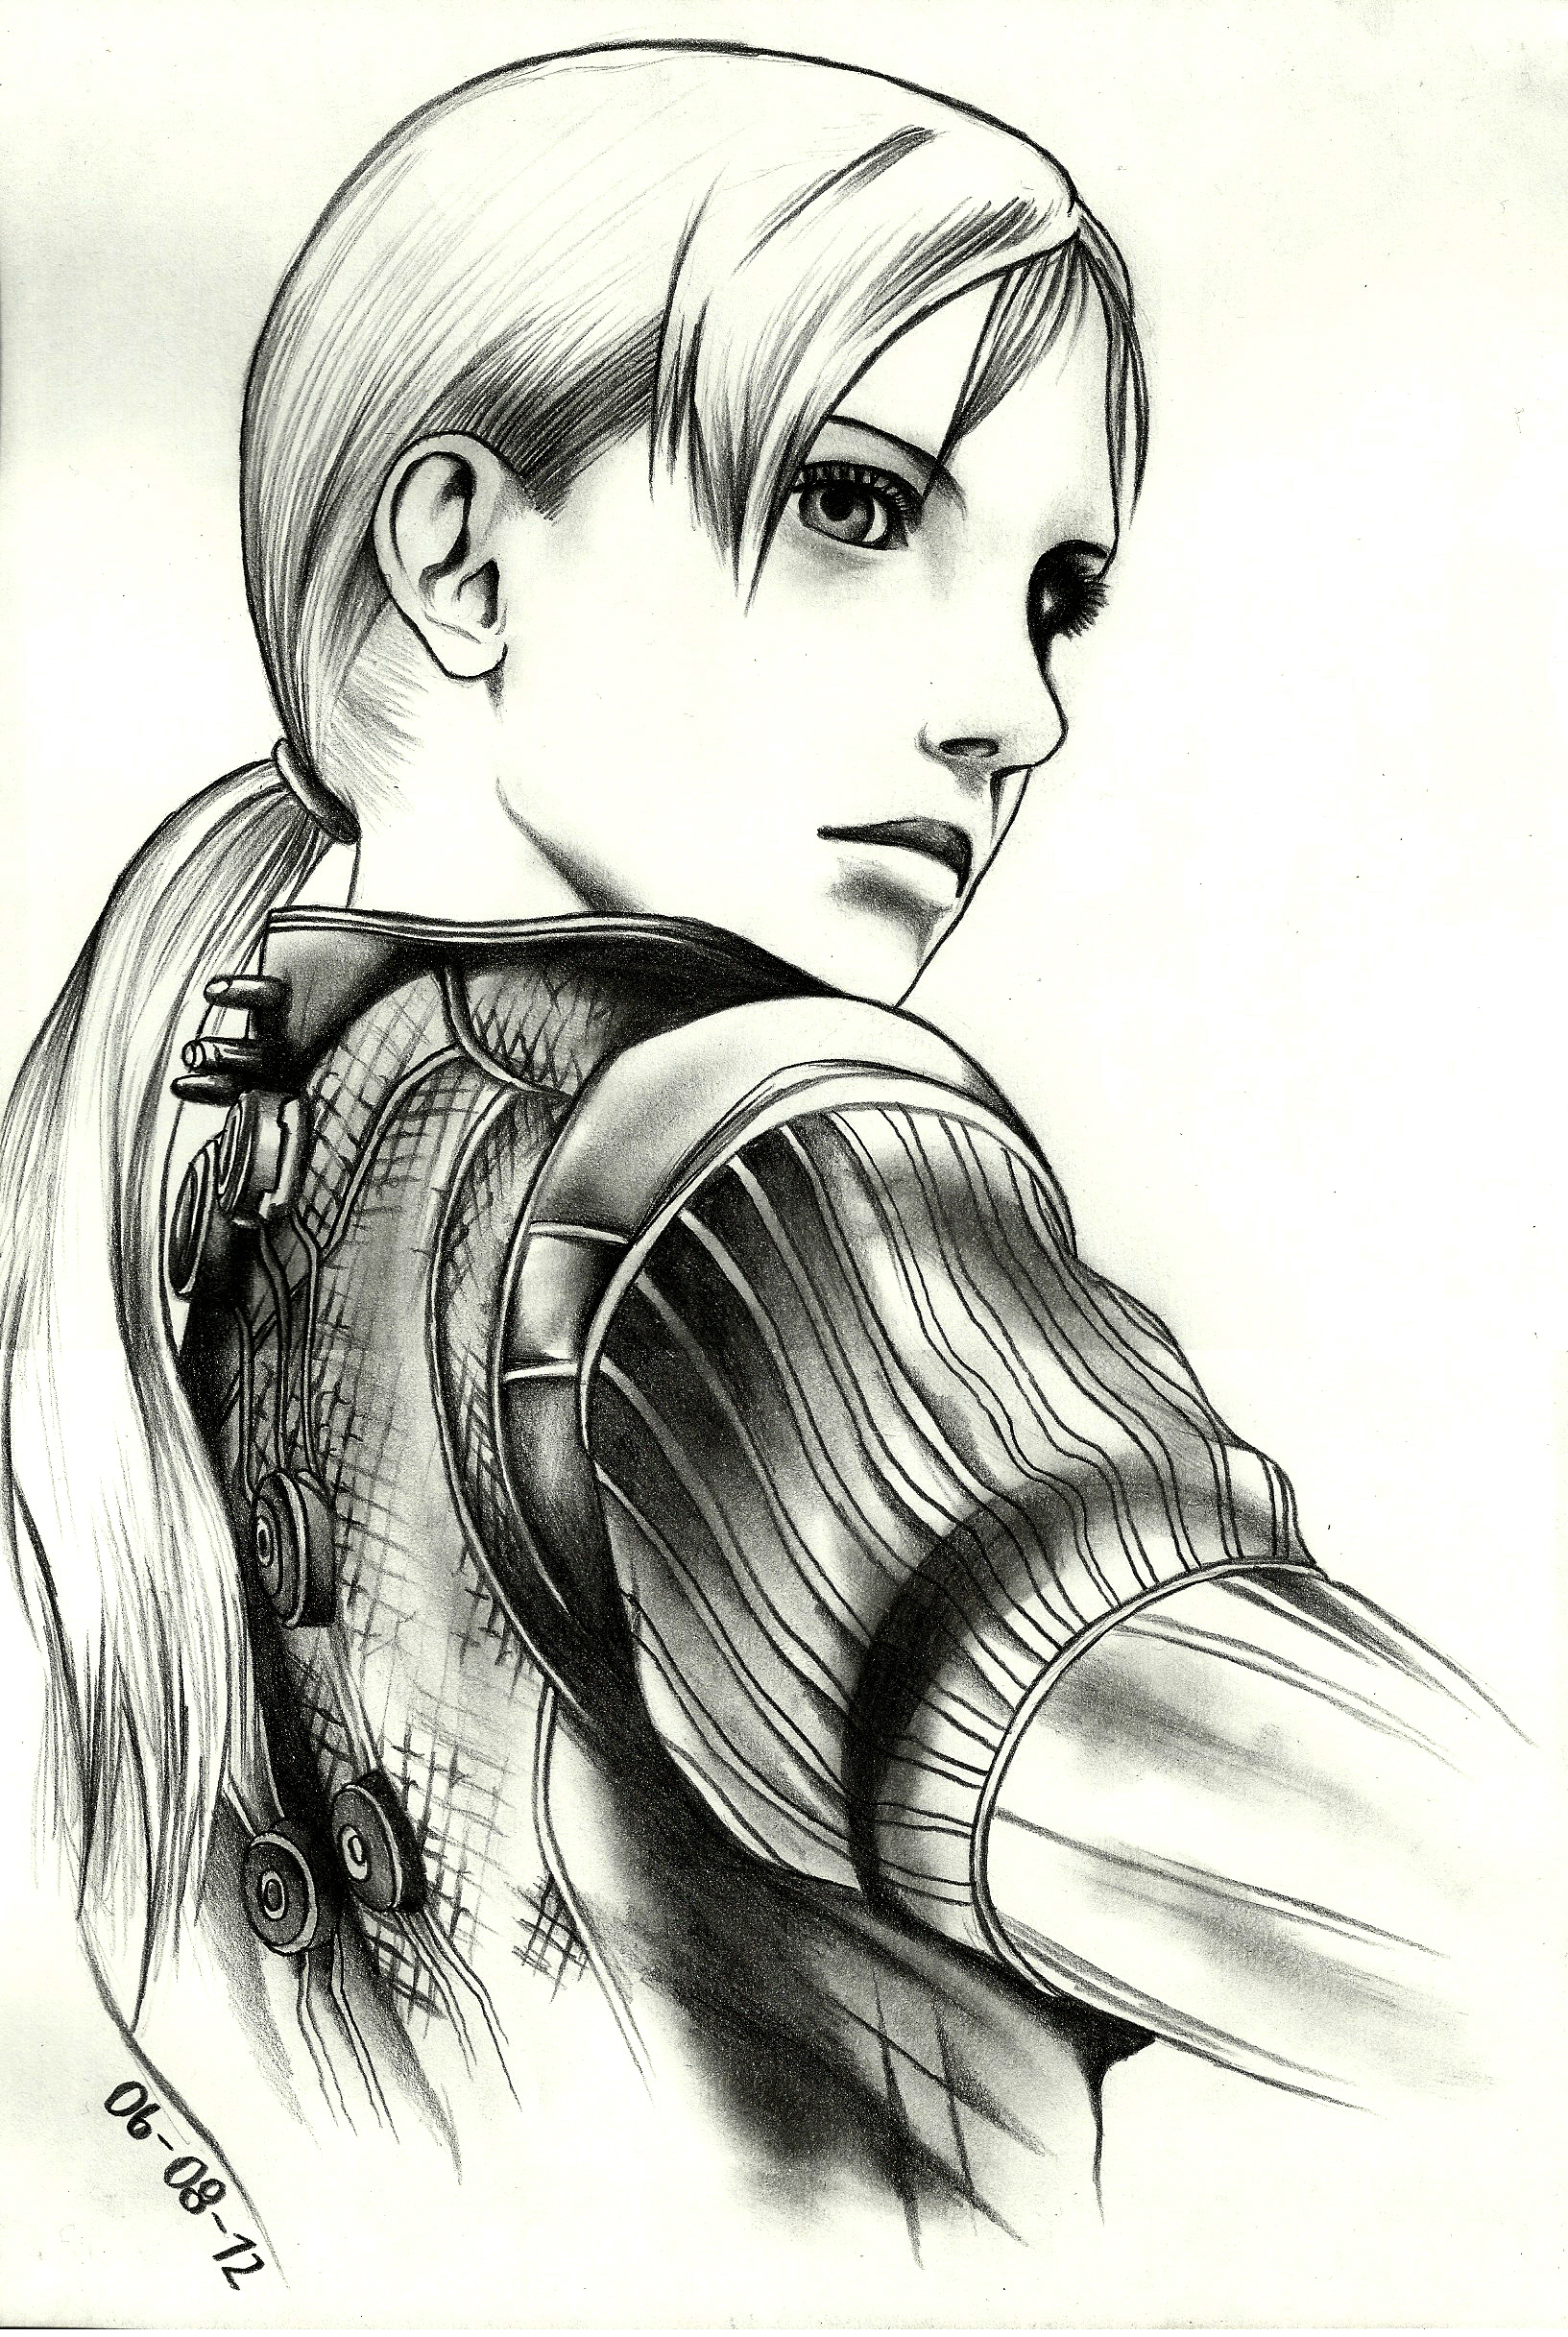 Jill Valentine RE5 by tyller16